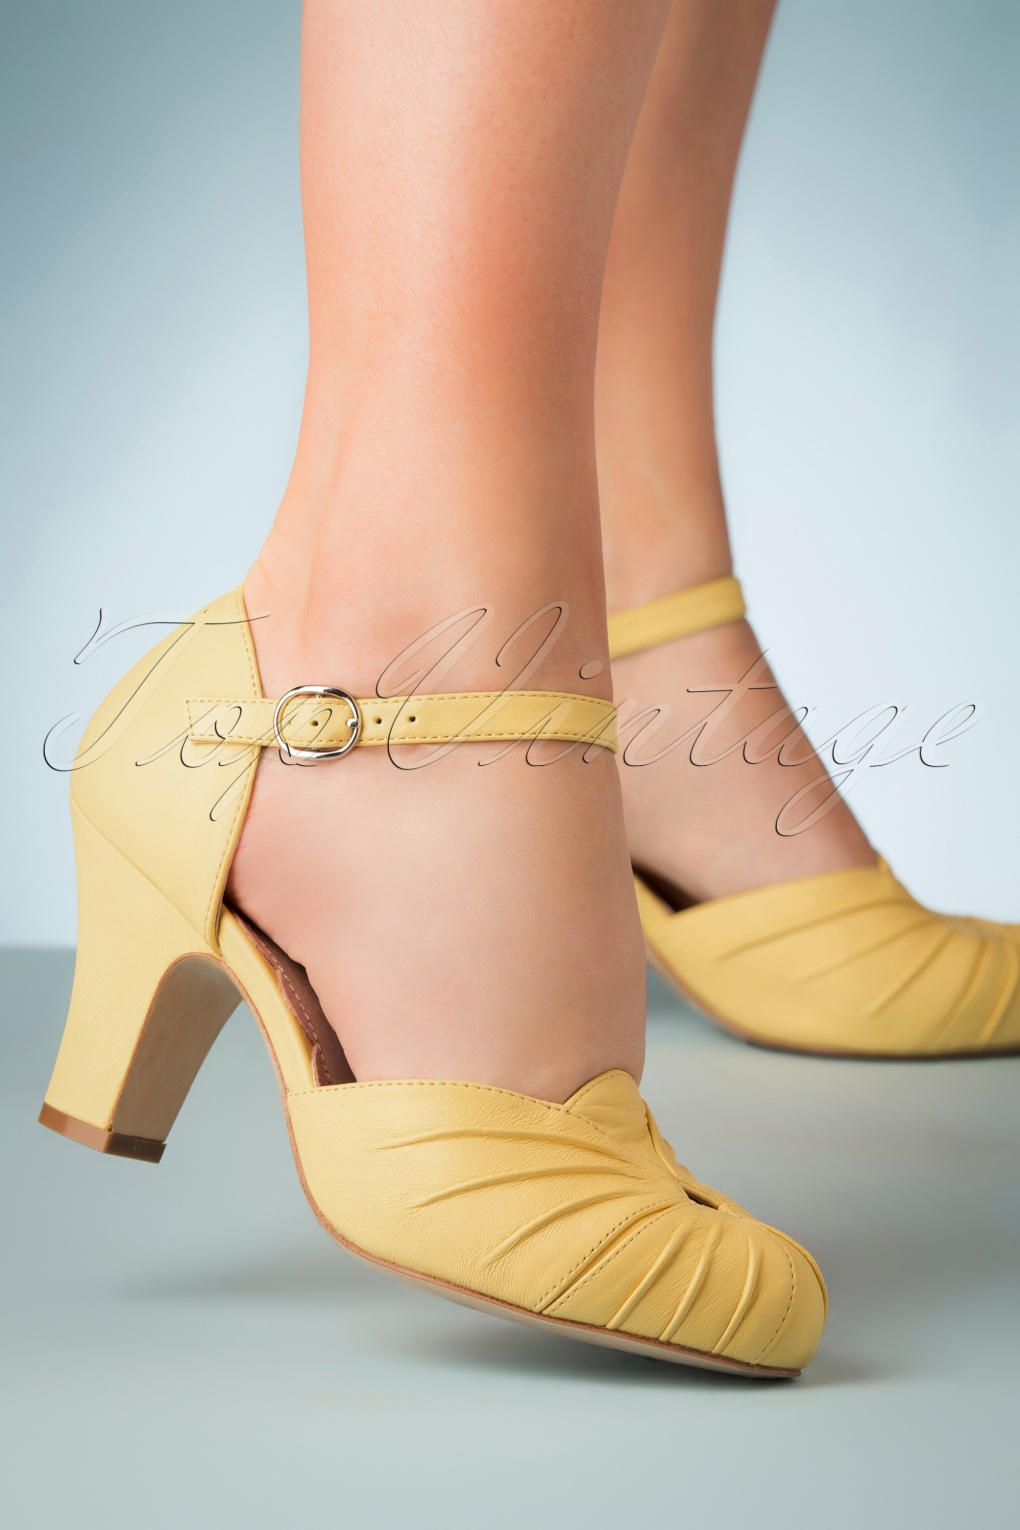 Pin Up Shoes- Heels, Pumps & Flats 40s Amber Mary Jane Pumps in Pastel Yellow �151.28 AT vintagedancer.com